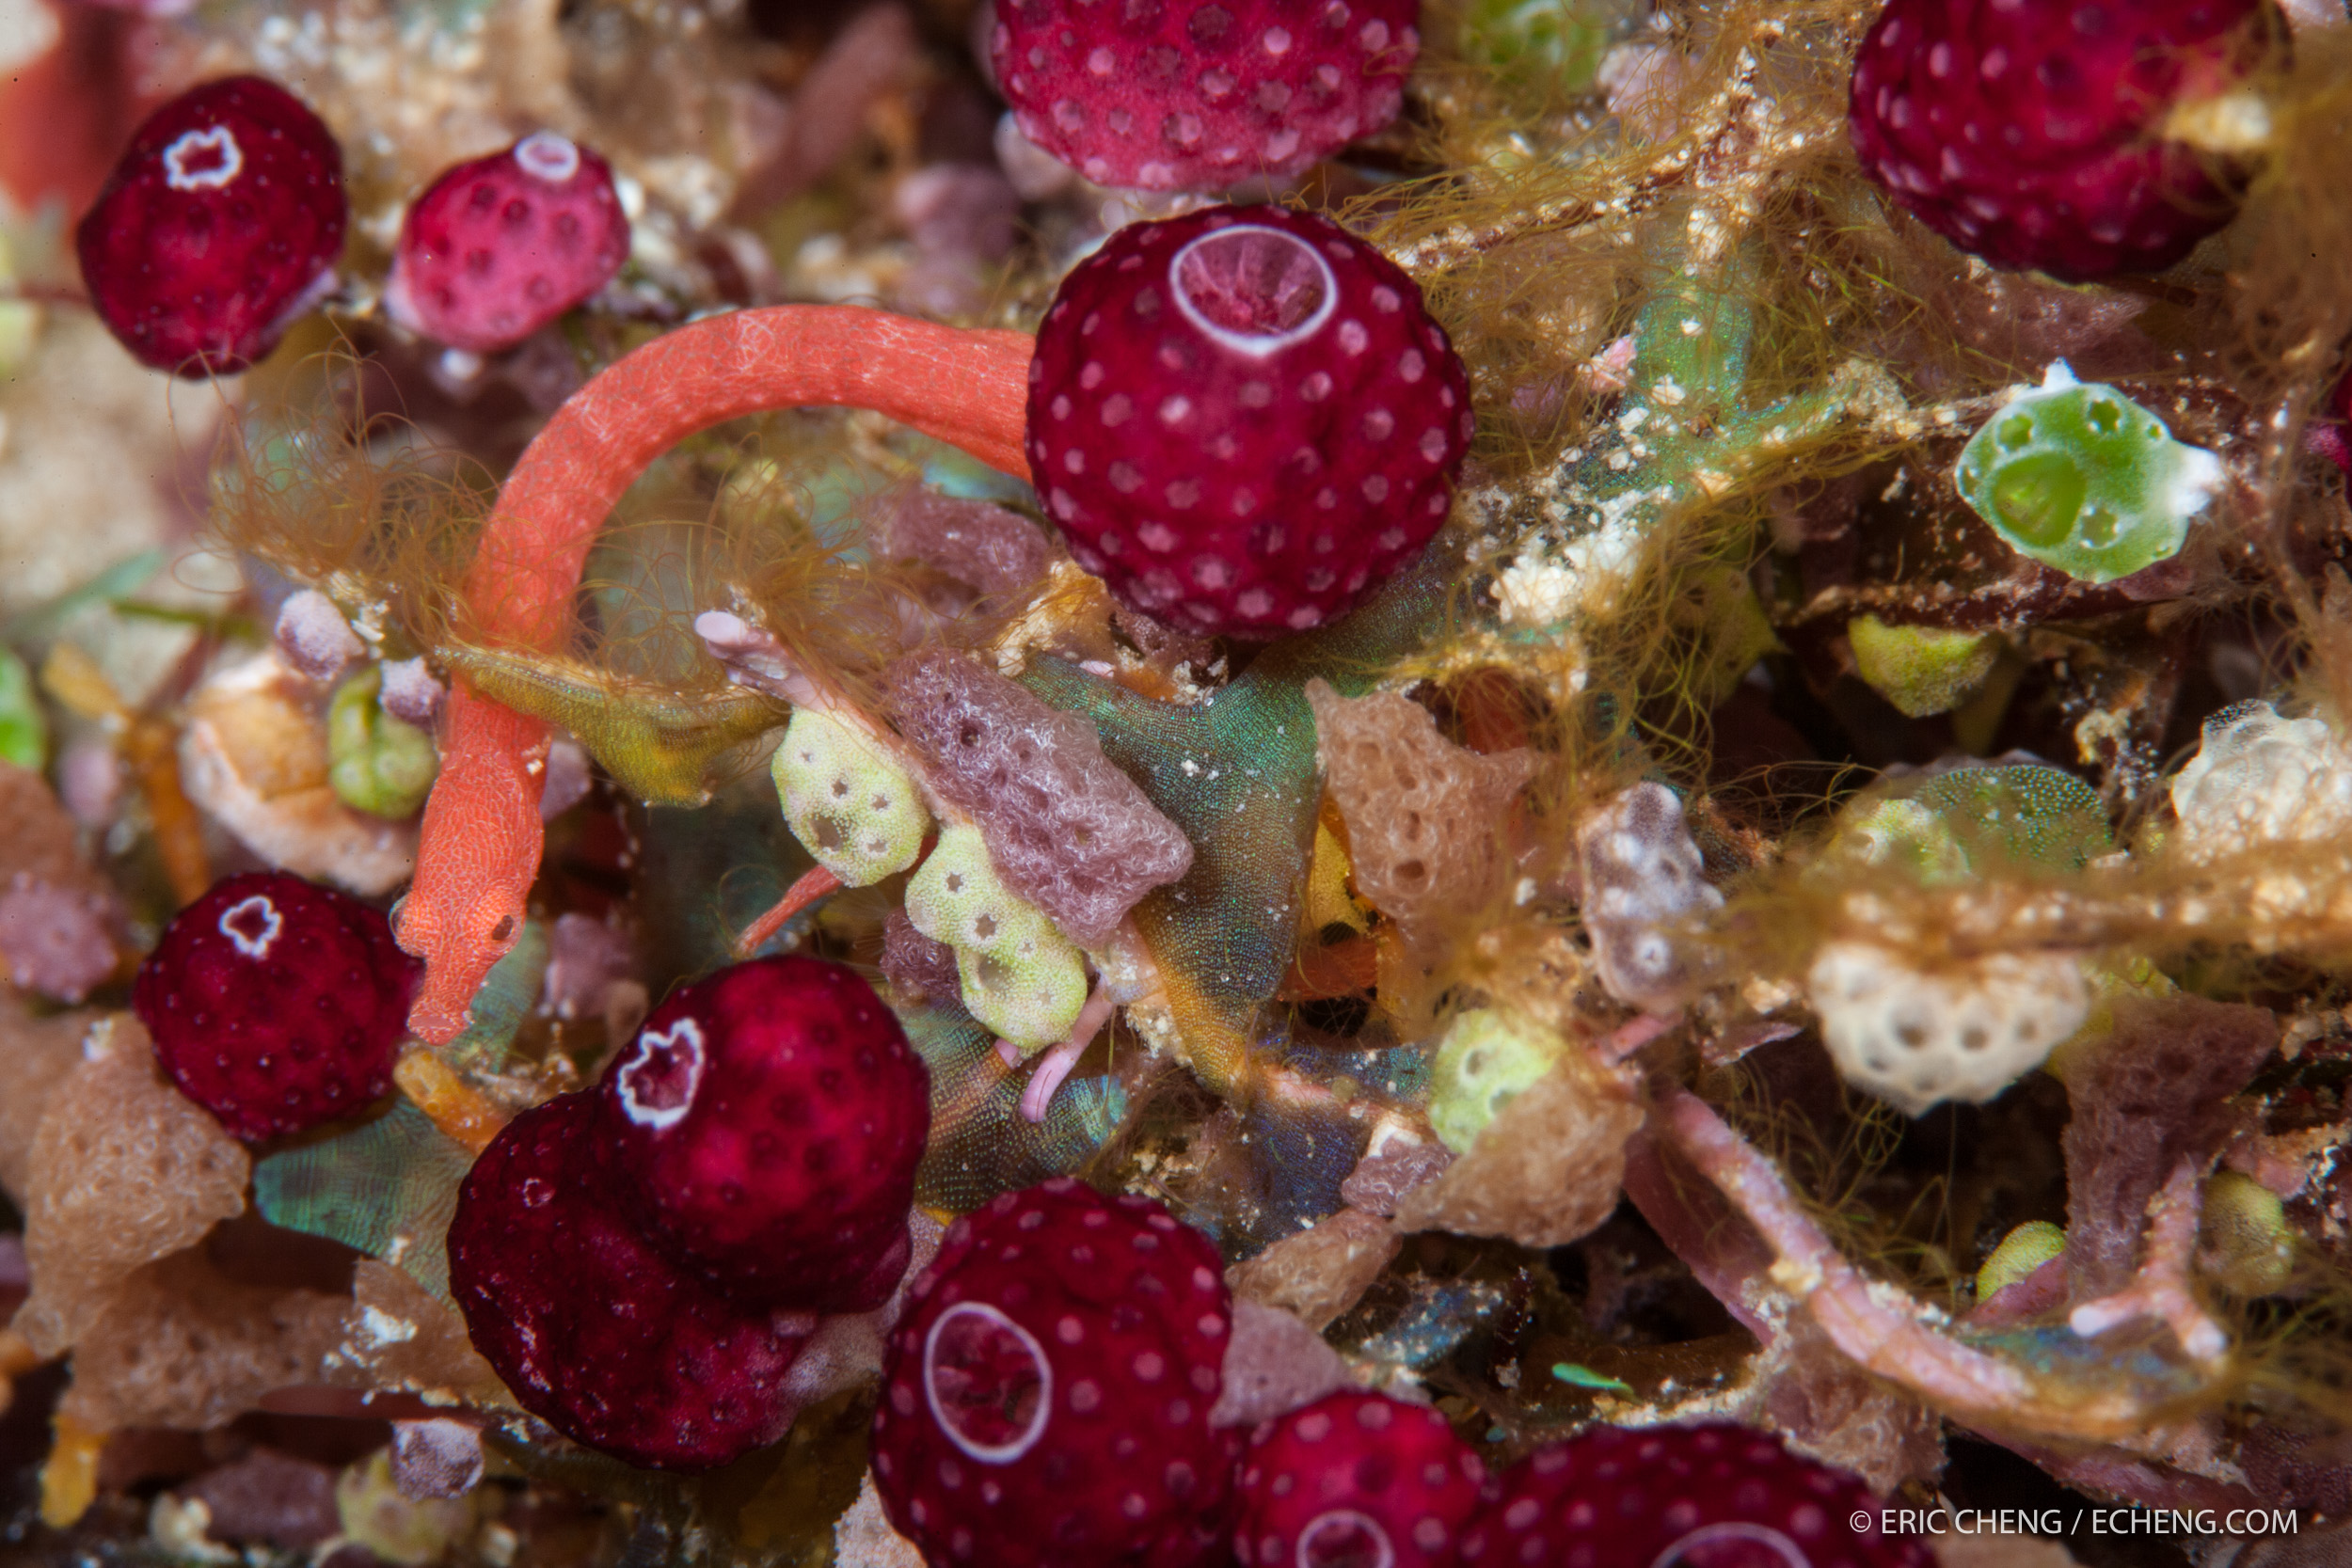 A well-camouflaged Lynne's pipefish (Festucalex rufus) in a bundle of tunicates, sponges, and algae at Kokoana Passage, Solomon Islands.